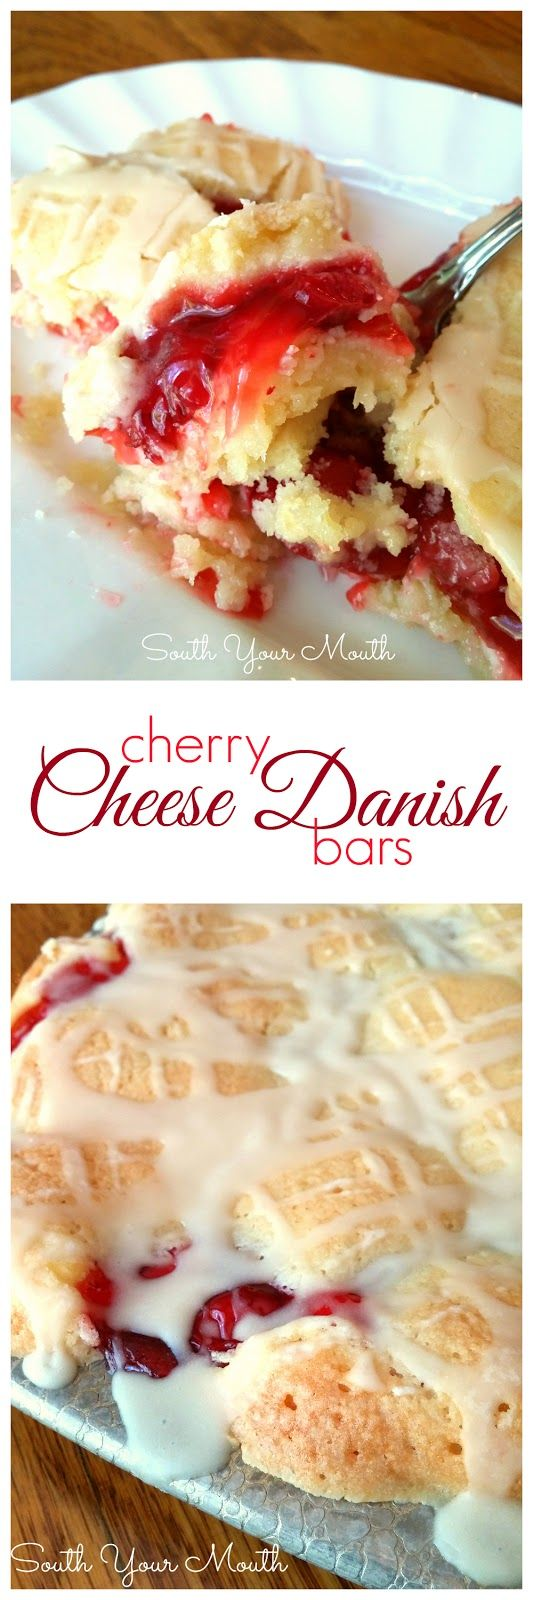 Cherry Cheese Danish Bars! Tender butter crumb bars with cherries and cream cheese in the middle. SO GOOD!